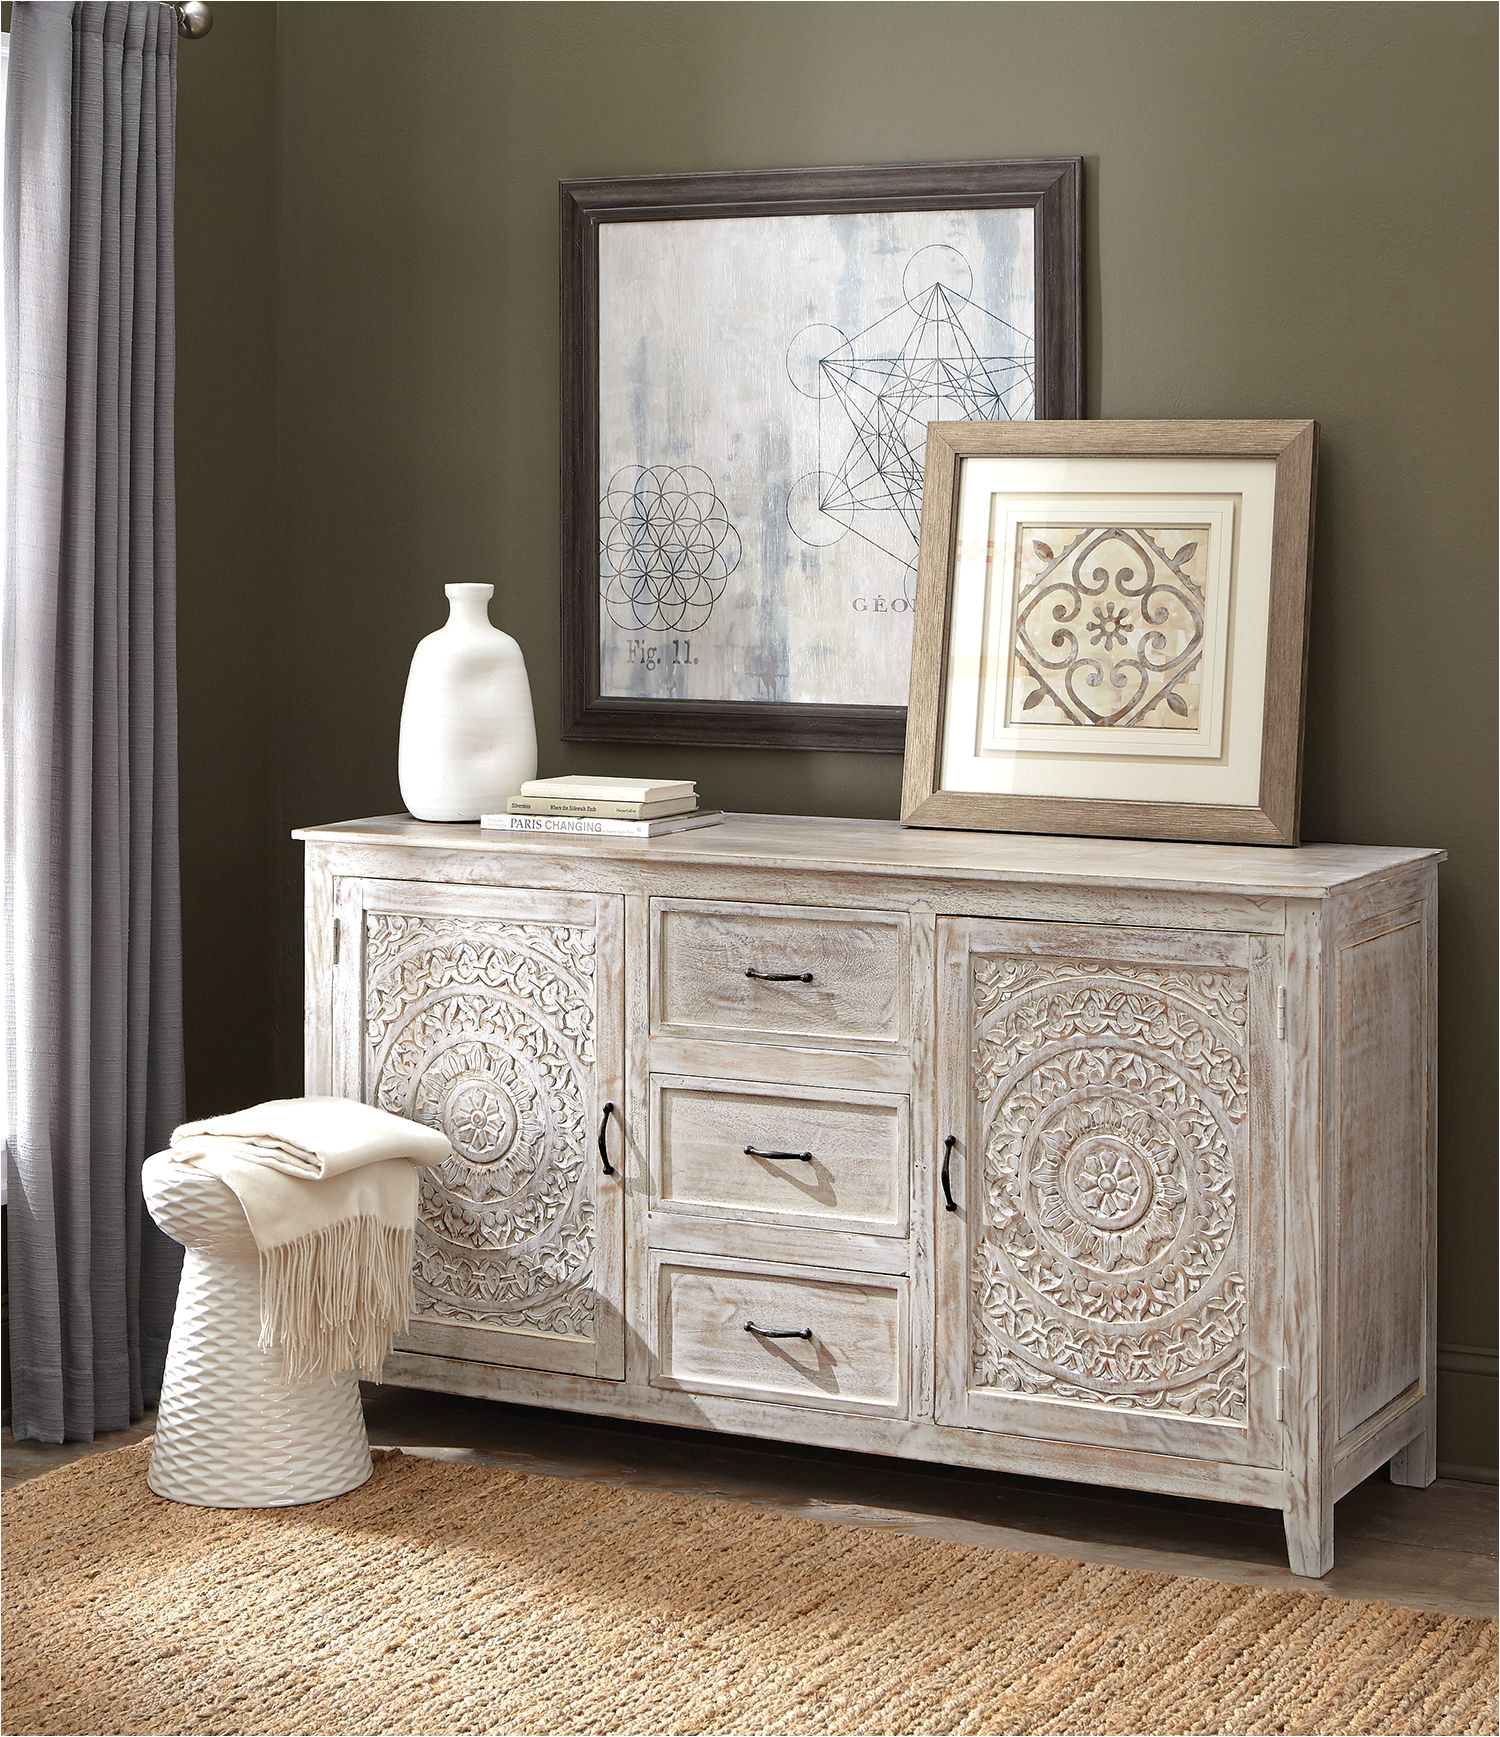 lots of storage and style loving our chennai dresser for the bedroom a detailed design on the doors gives it standout appeal a gorgeous whitewash finish